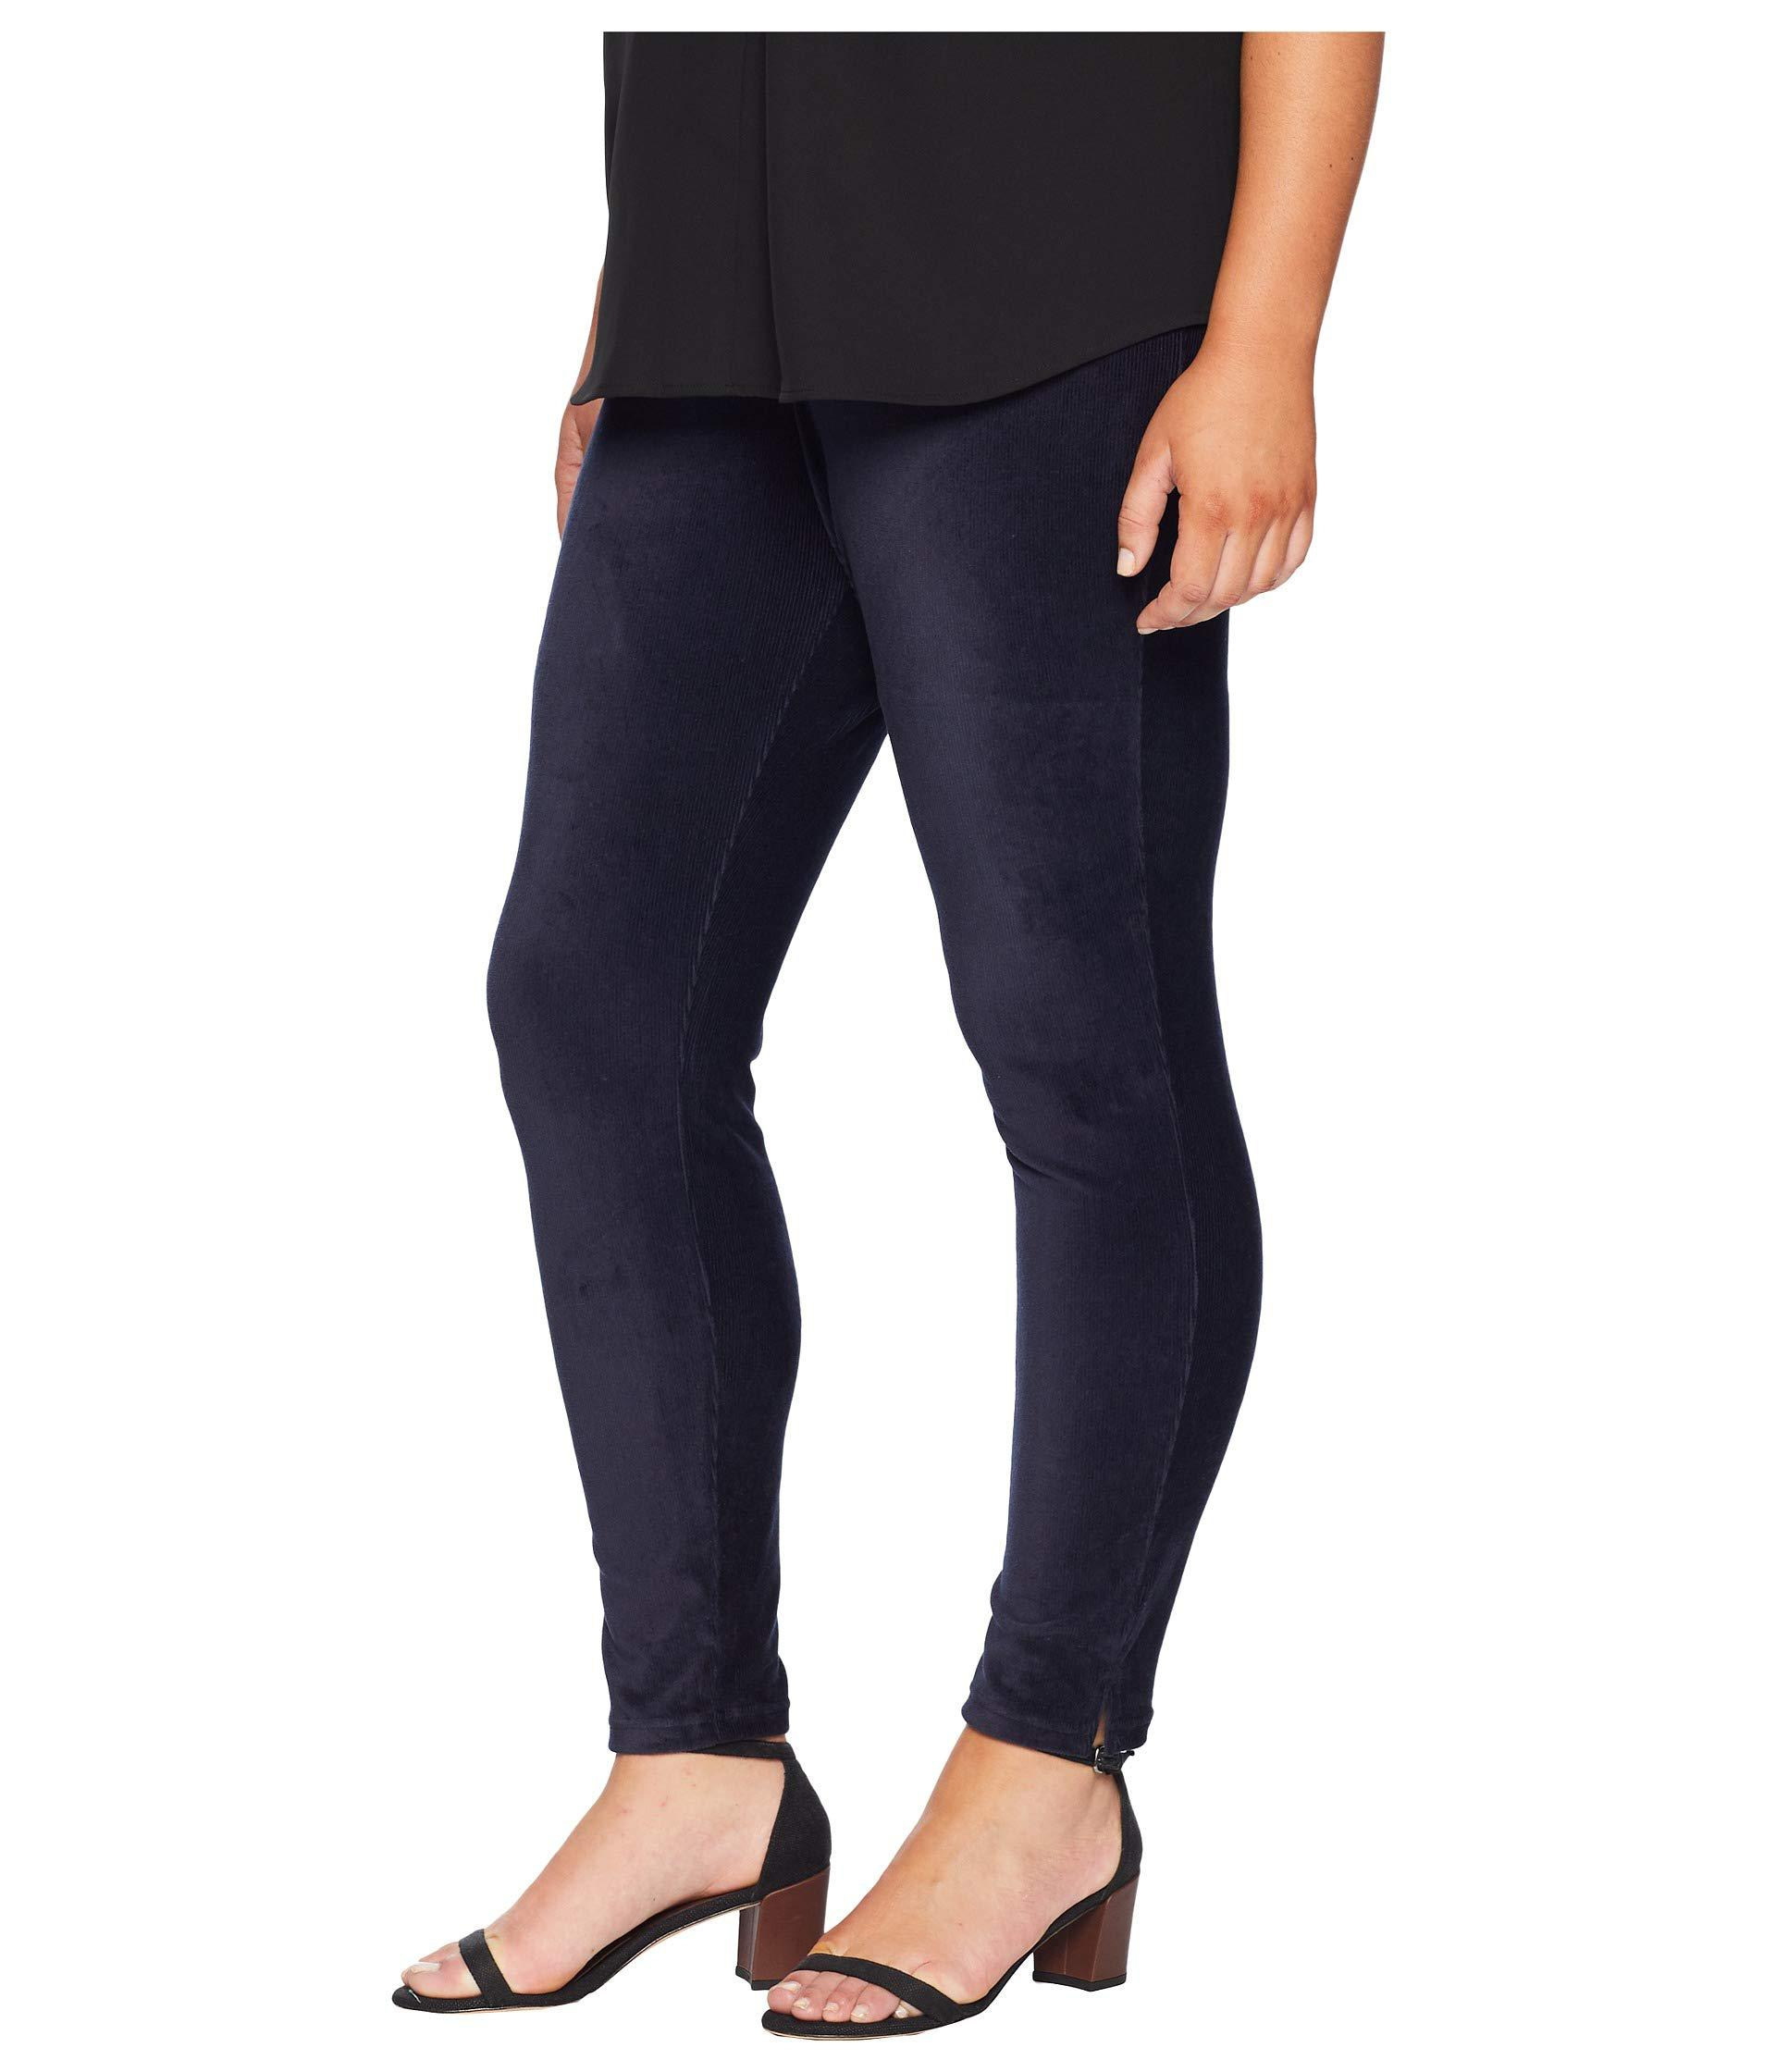 6ee01a85ef80a1 Lyst - Hue Plus Size High-waist Corduroy Leggings (navy) Women's Casual  Pants in Blue